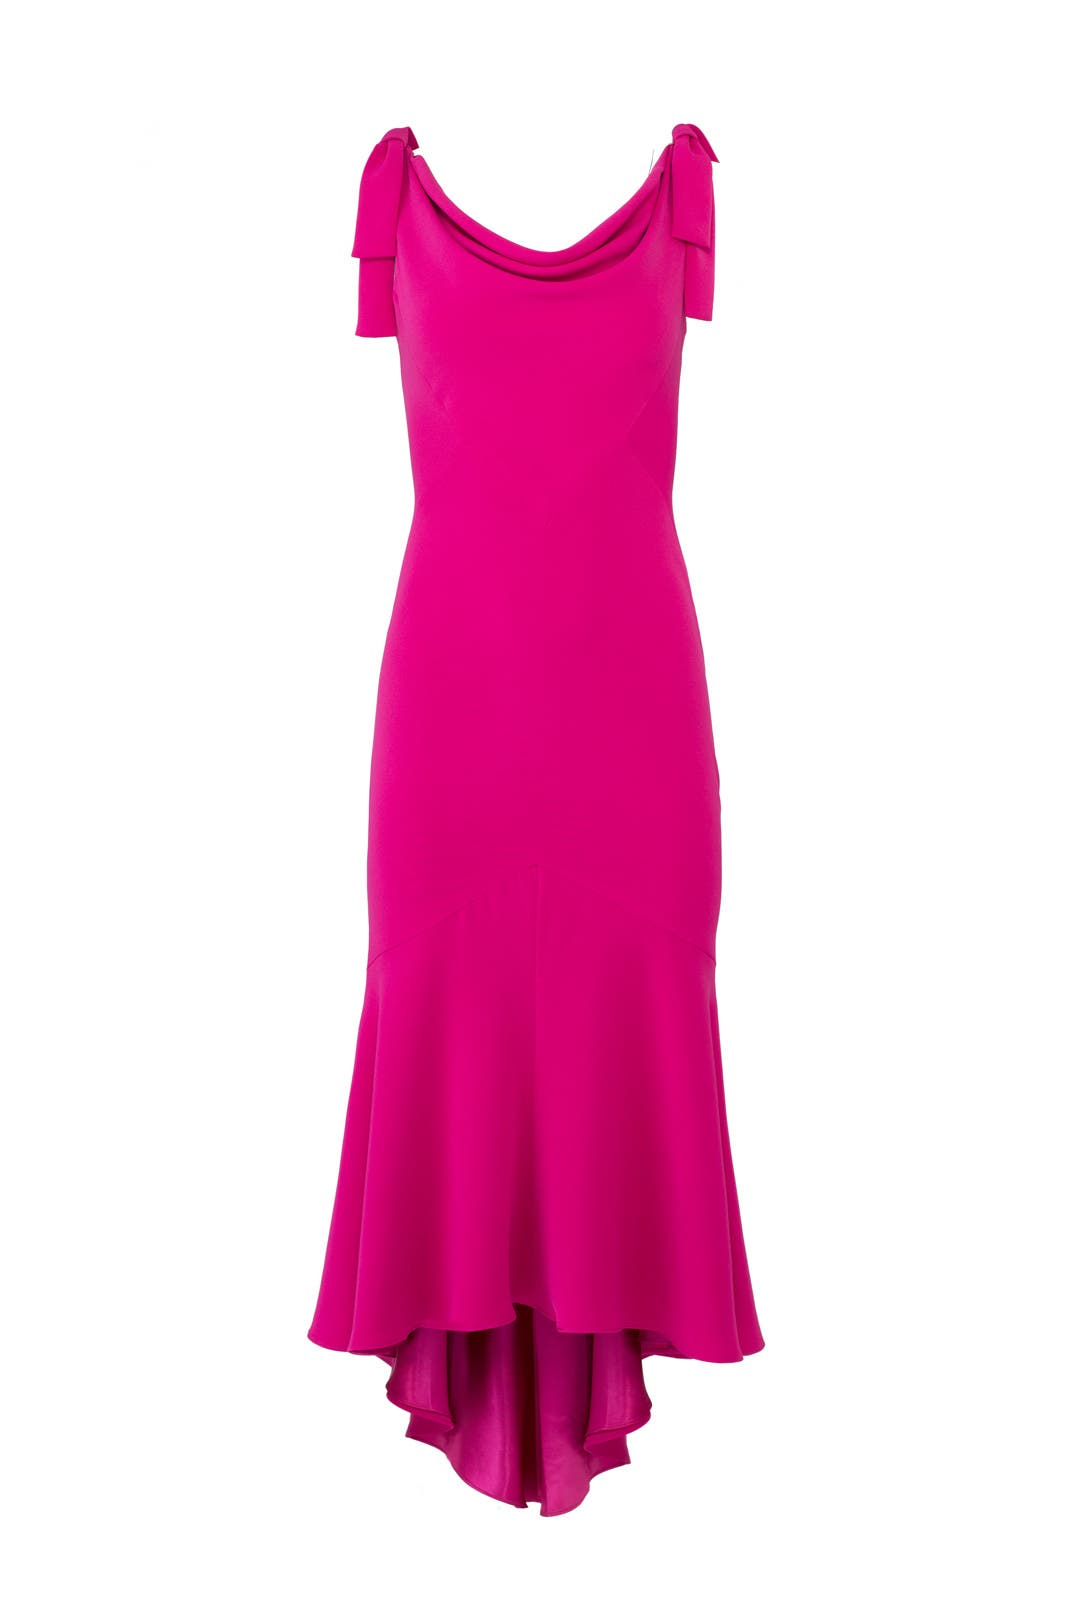 Tied Fuchsia Dress by Carmen Marc Valvo for $110 | Rent the Runway